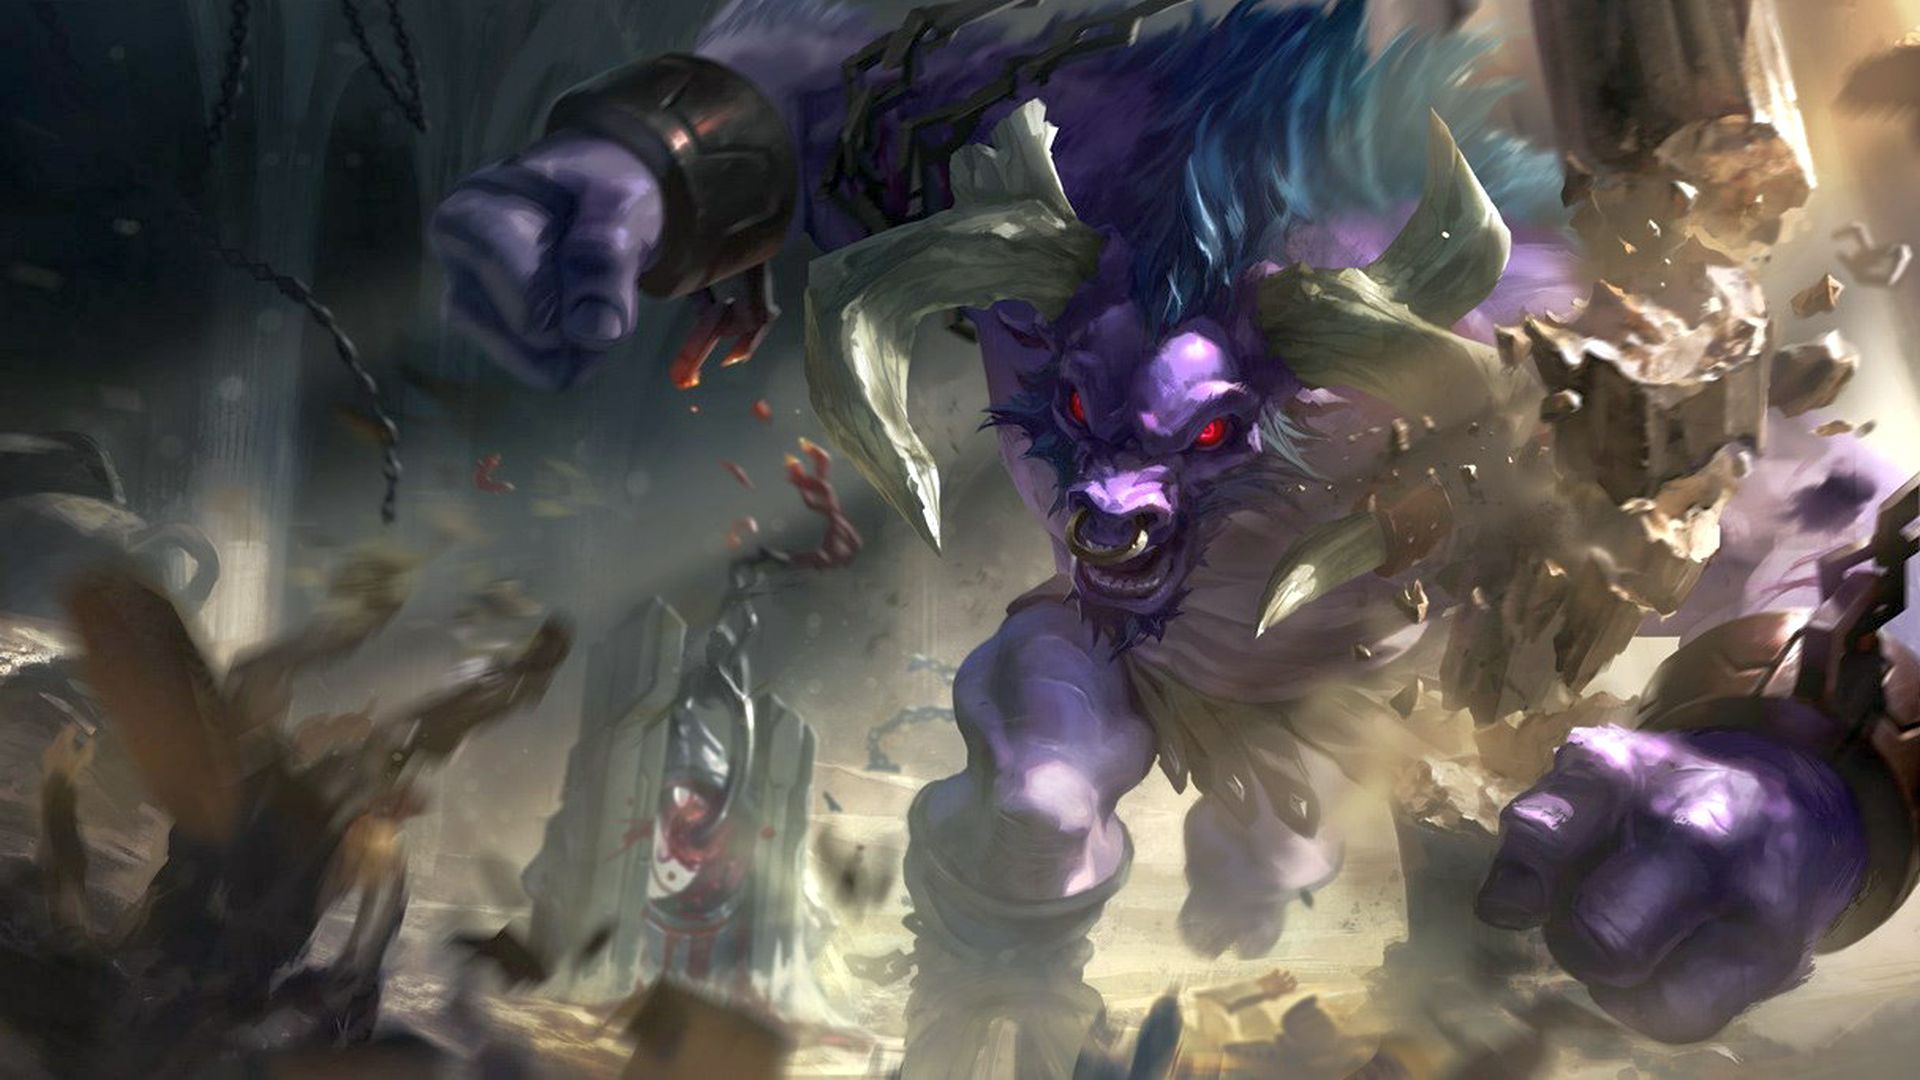 League of Legends' Alistar gets nerfs, Braum and Kindred get buffs next patch